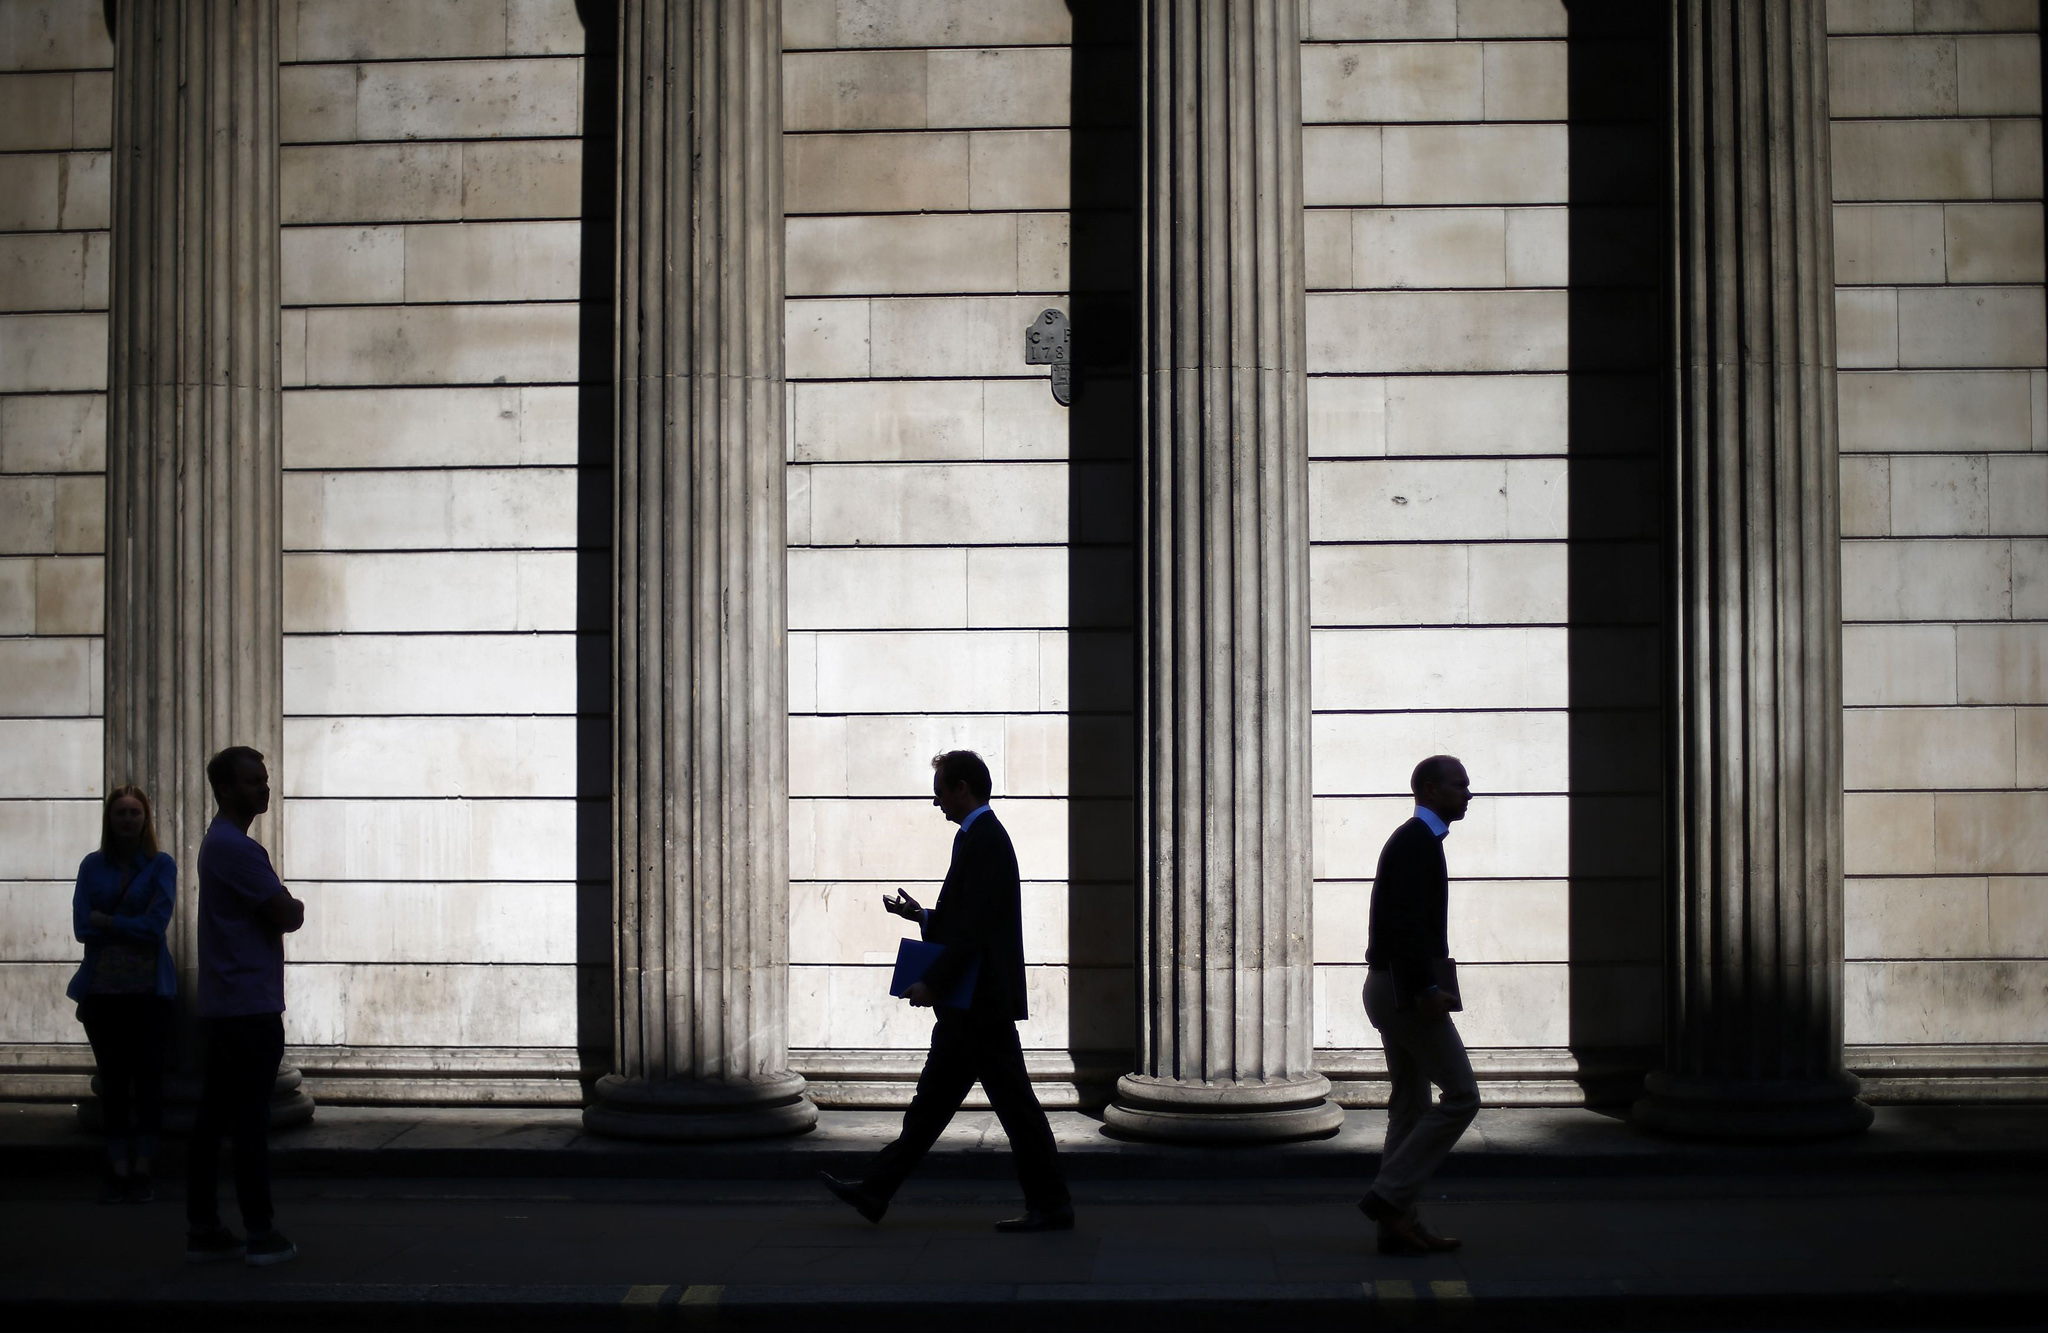 People are silhouetted as they walk past the columns of the Bank of England in the City of London...People are silhouetted on a sunny morning as they walk past the columns of the Bank of England in the City of London, May 19, 2014. Sterling eased on Monday, on growing talk the Bank of England will step in to cool the UK housing market, which would allow the central bank to keep interest rates lower for longer to sustain recovery elsewhere in the economy.